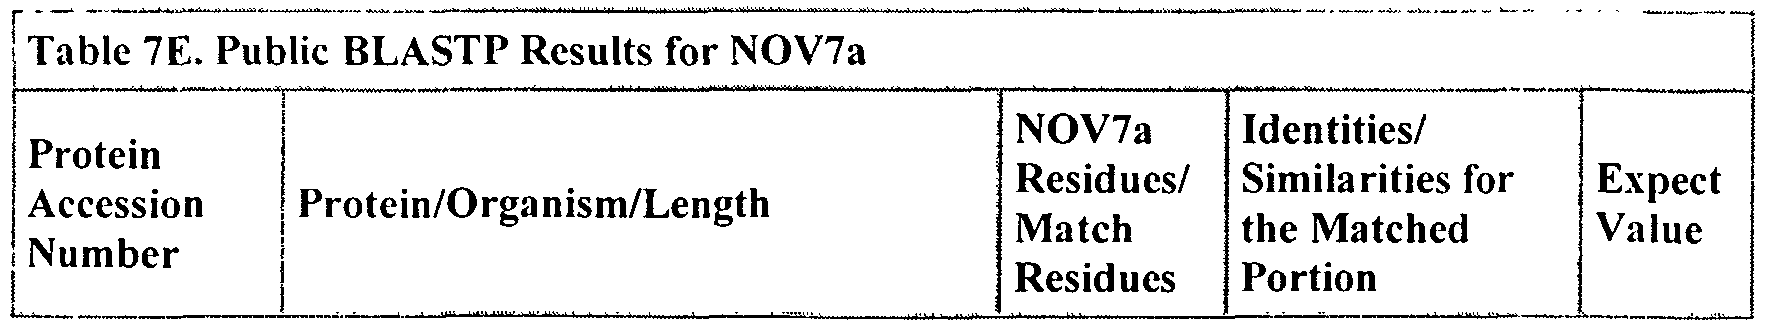 WO2003023002A2 - Novel human proteins, polynucleotides encoding them and  methods of using the same - Google Patents